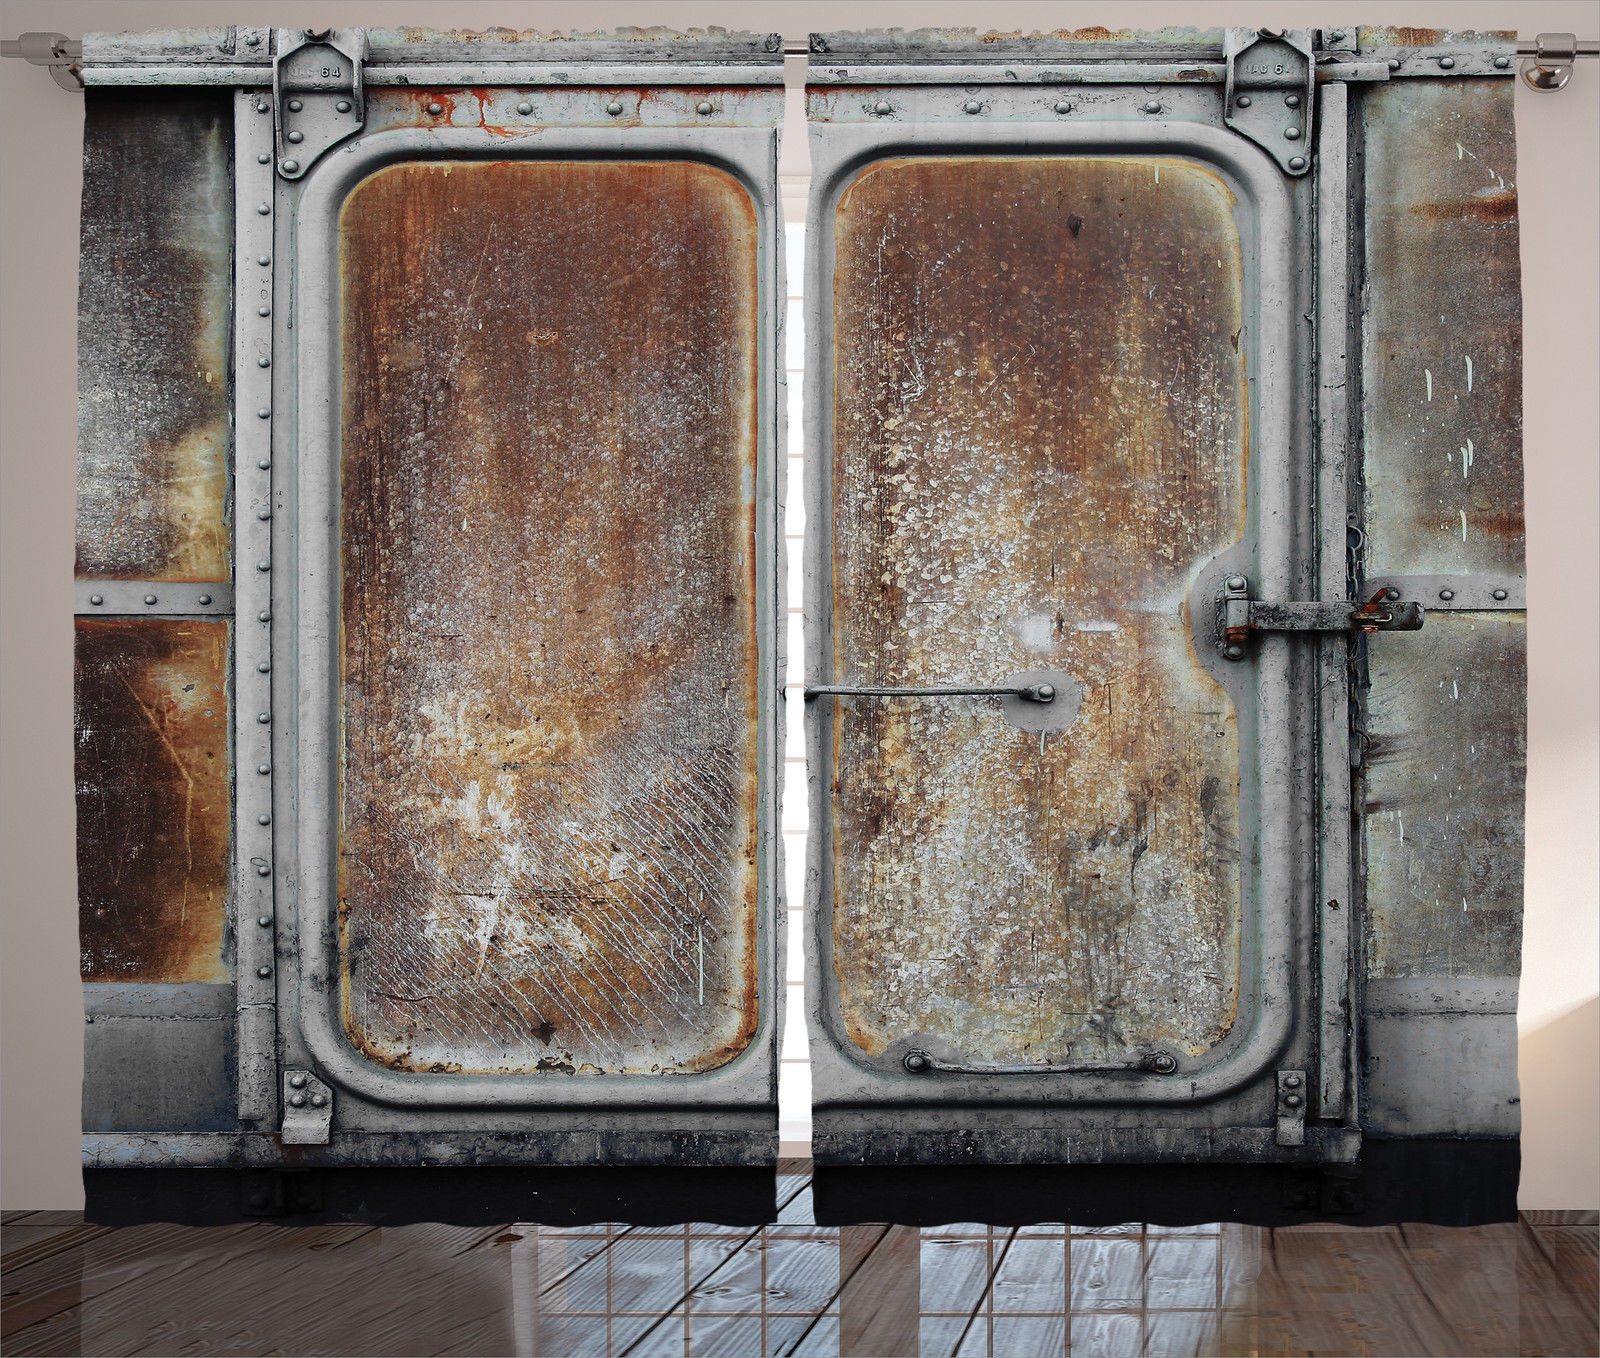 Vintage Railway Container Door Metal Locomotive Iron Image